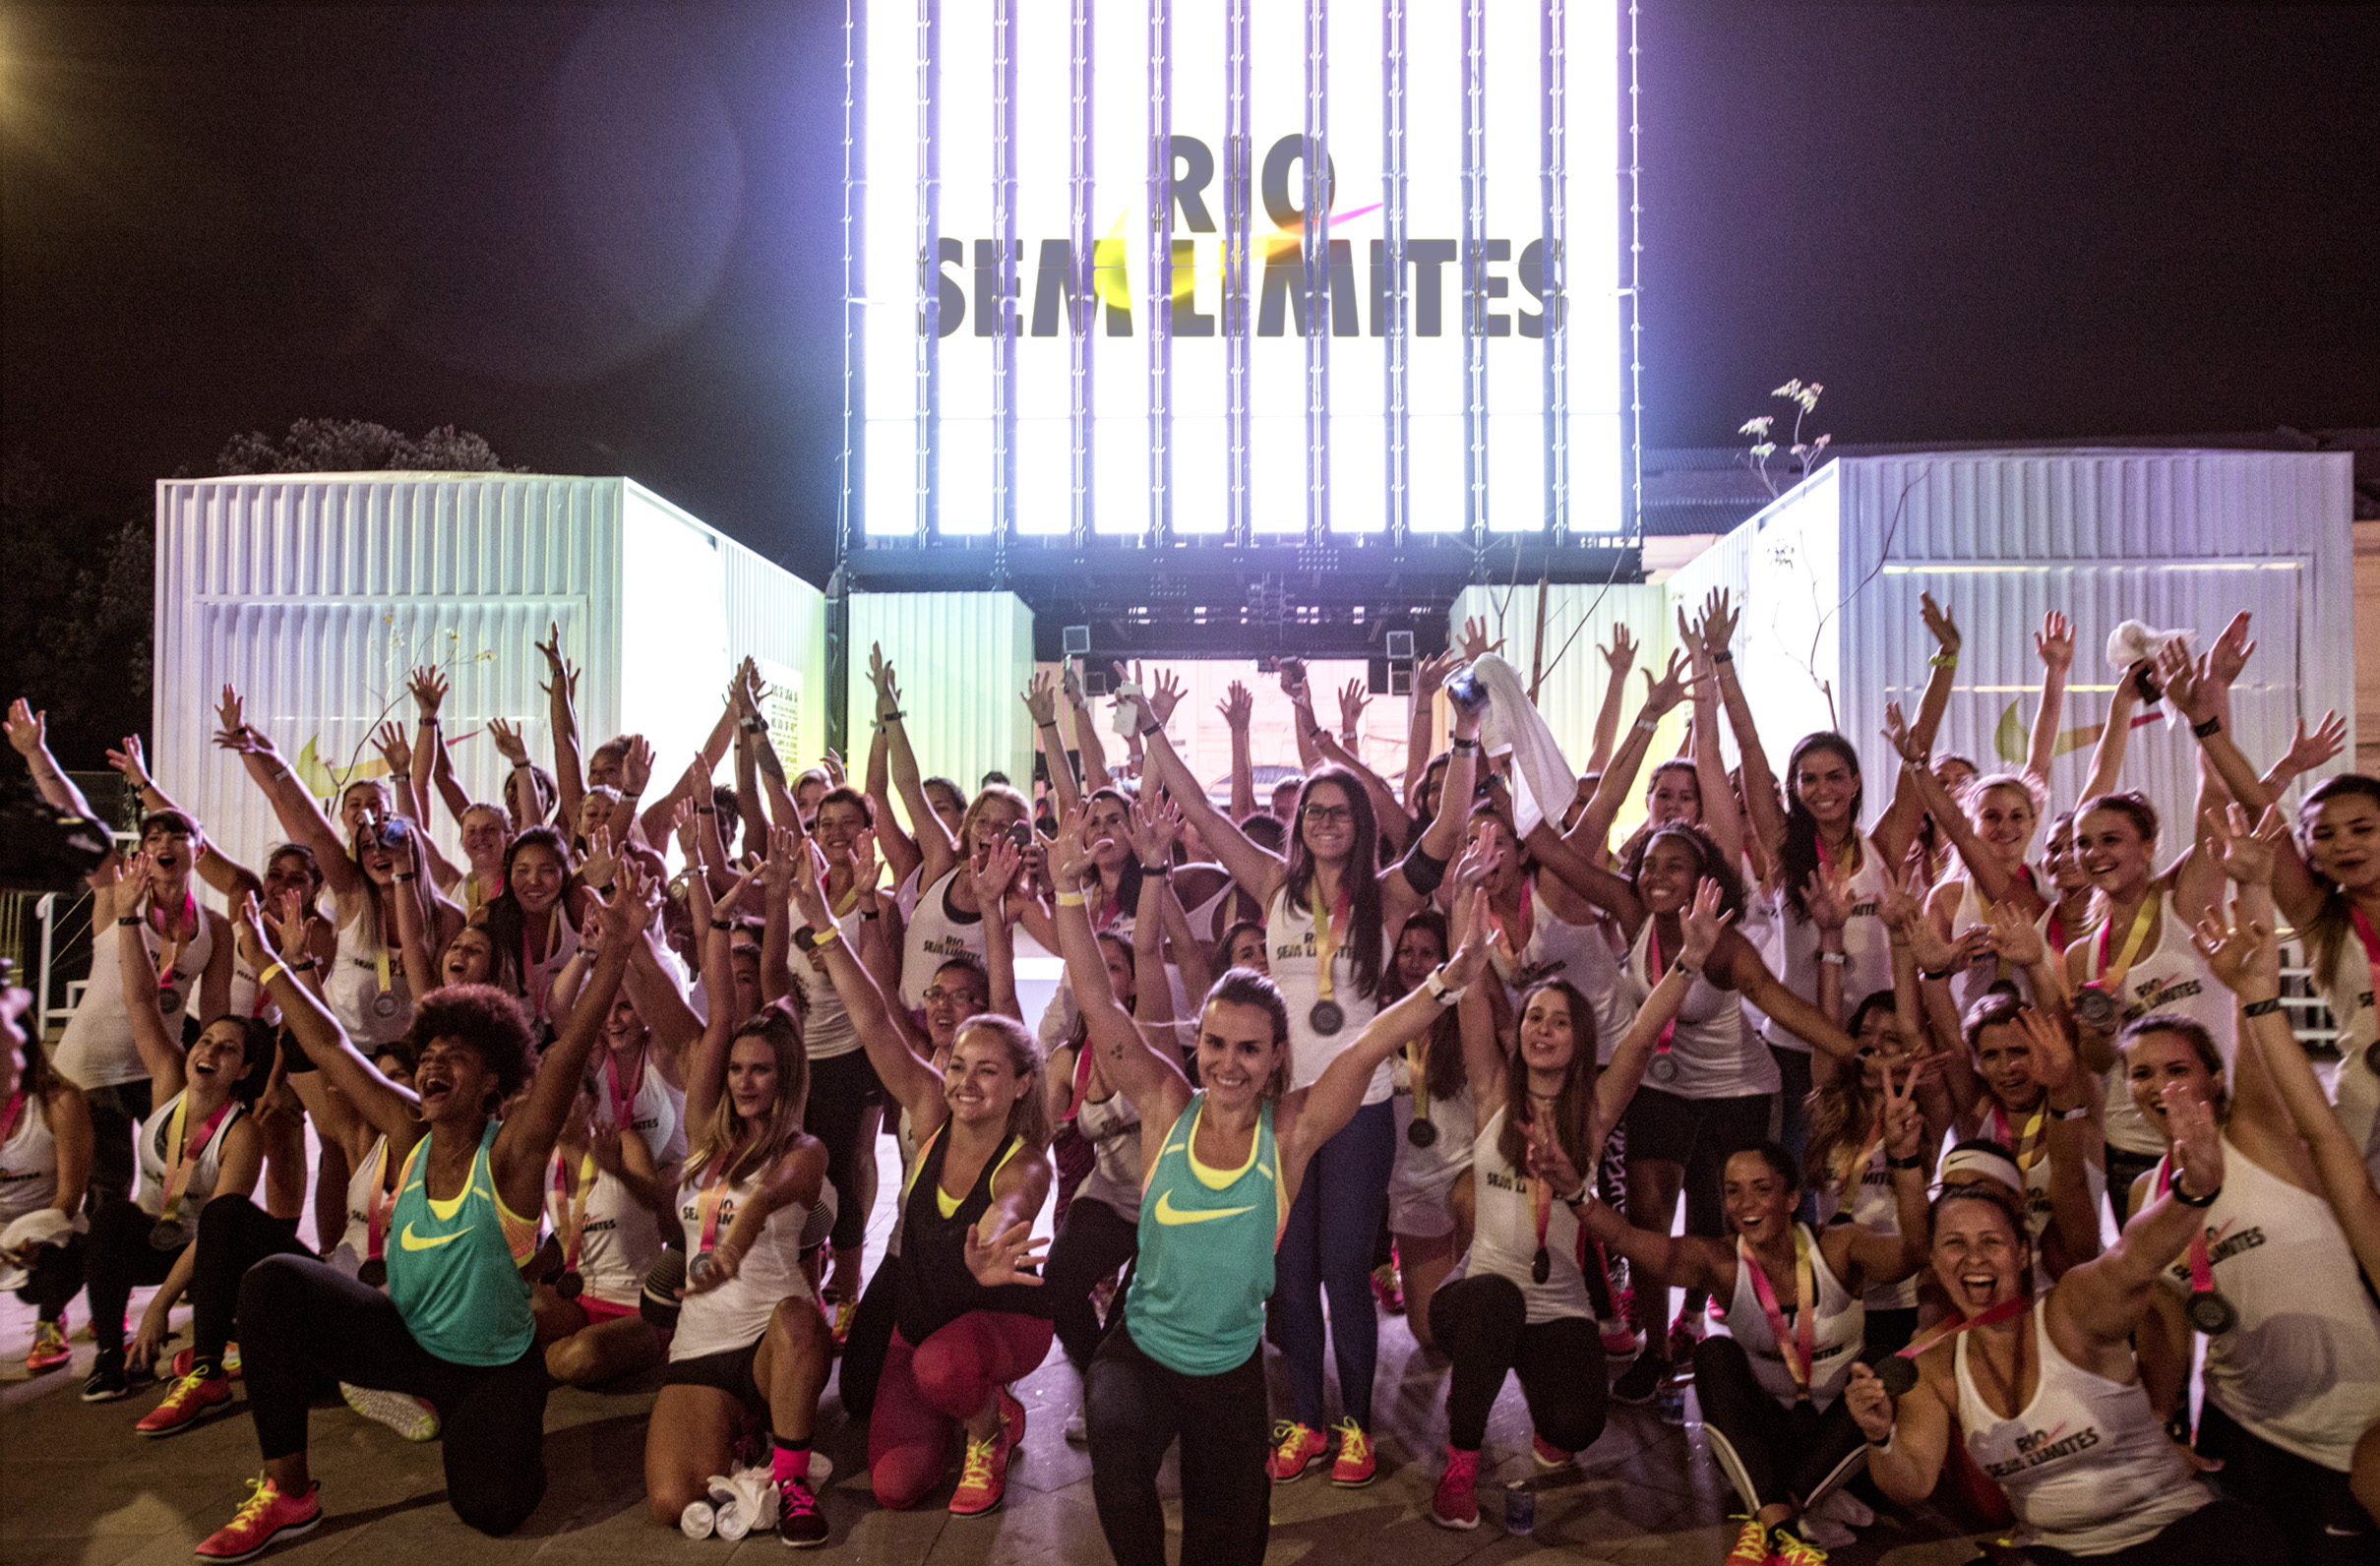 nike-rio-unlimited-3